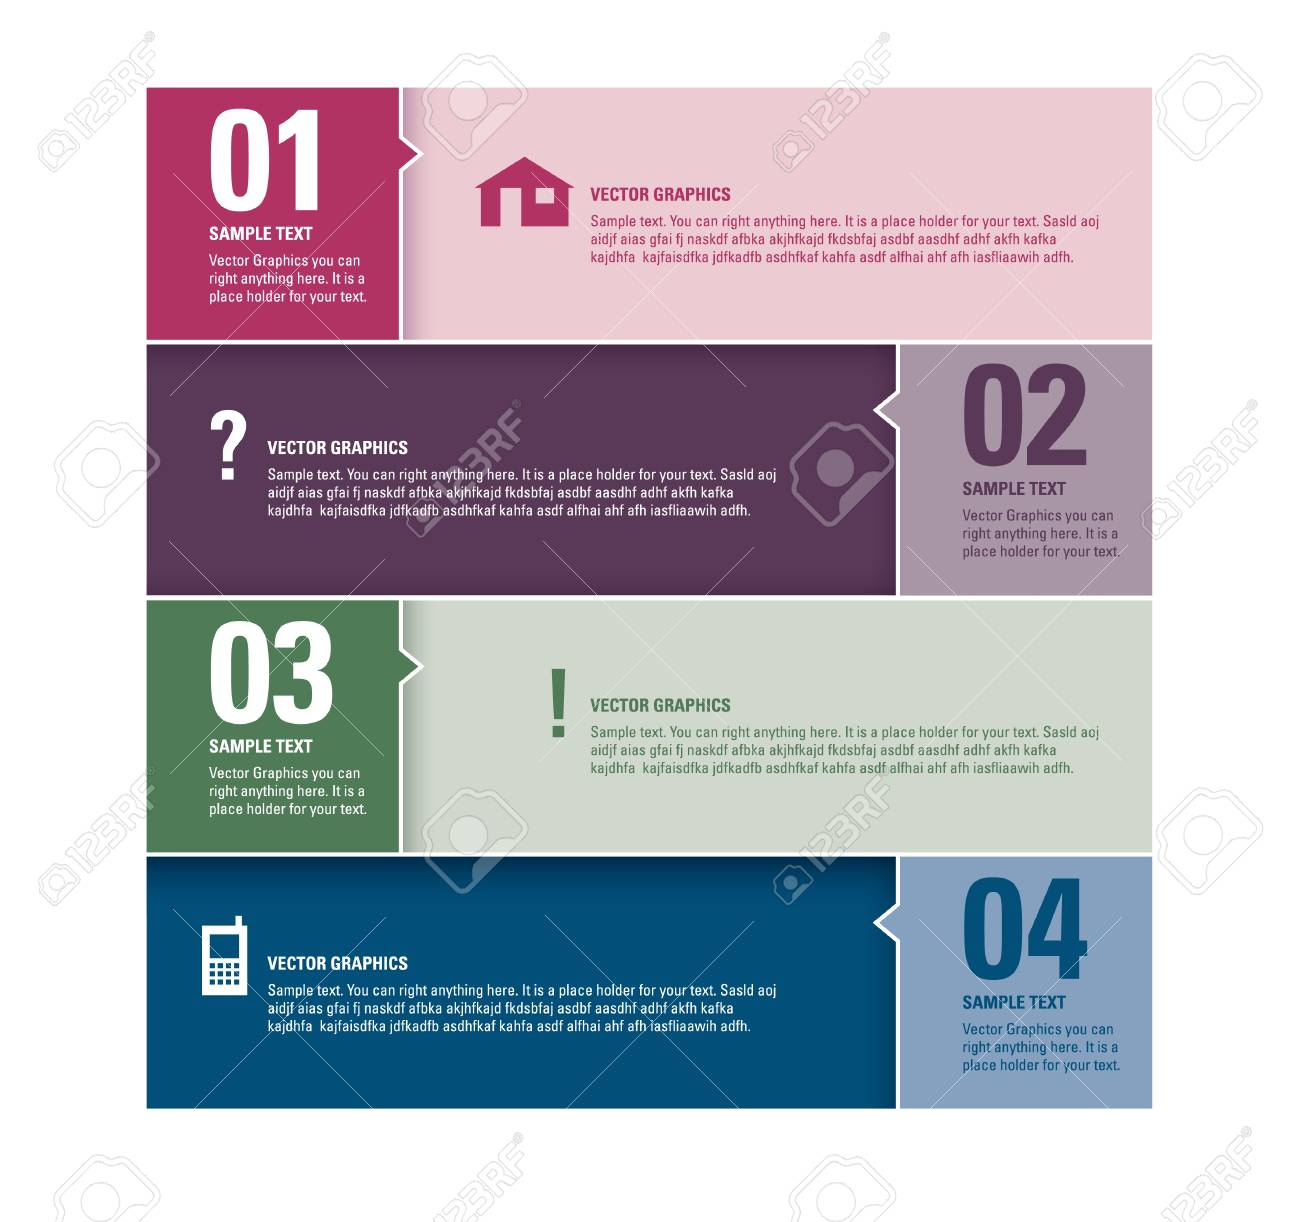 Modern Vector Design Template  Numbered Banners  Graphic or Website Layout Stock Vector - 17946892